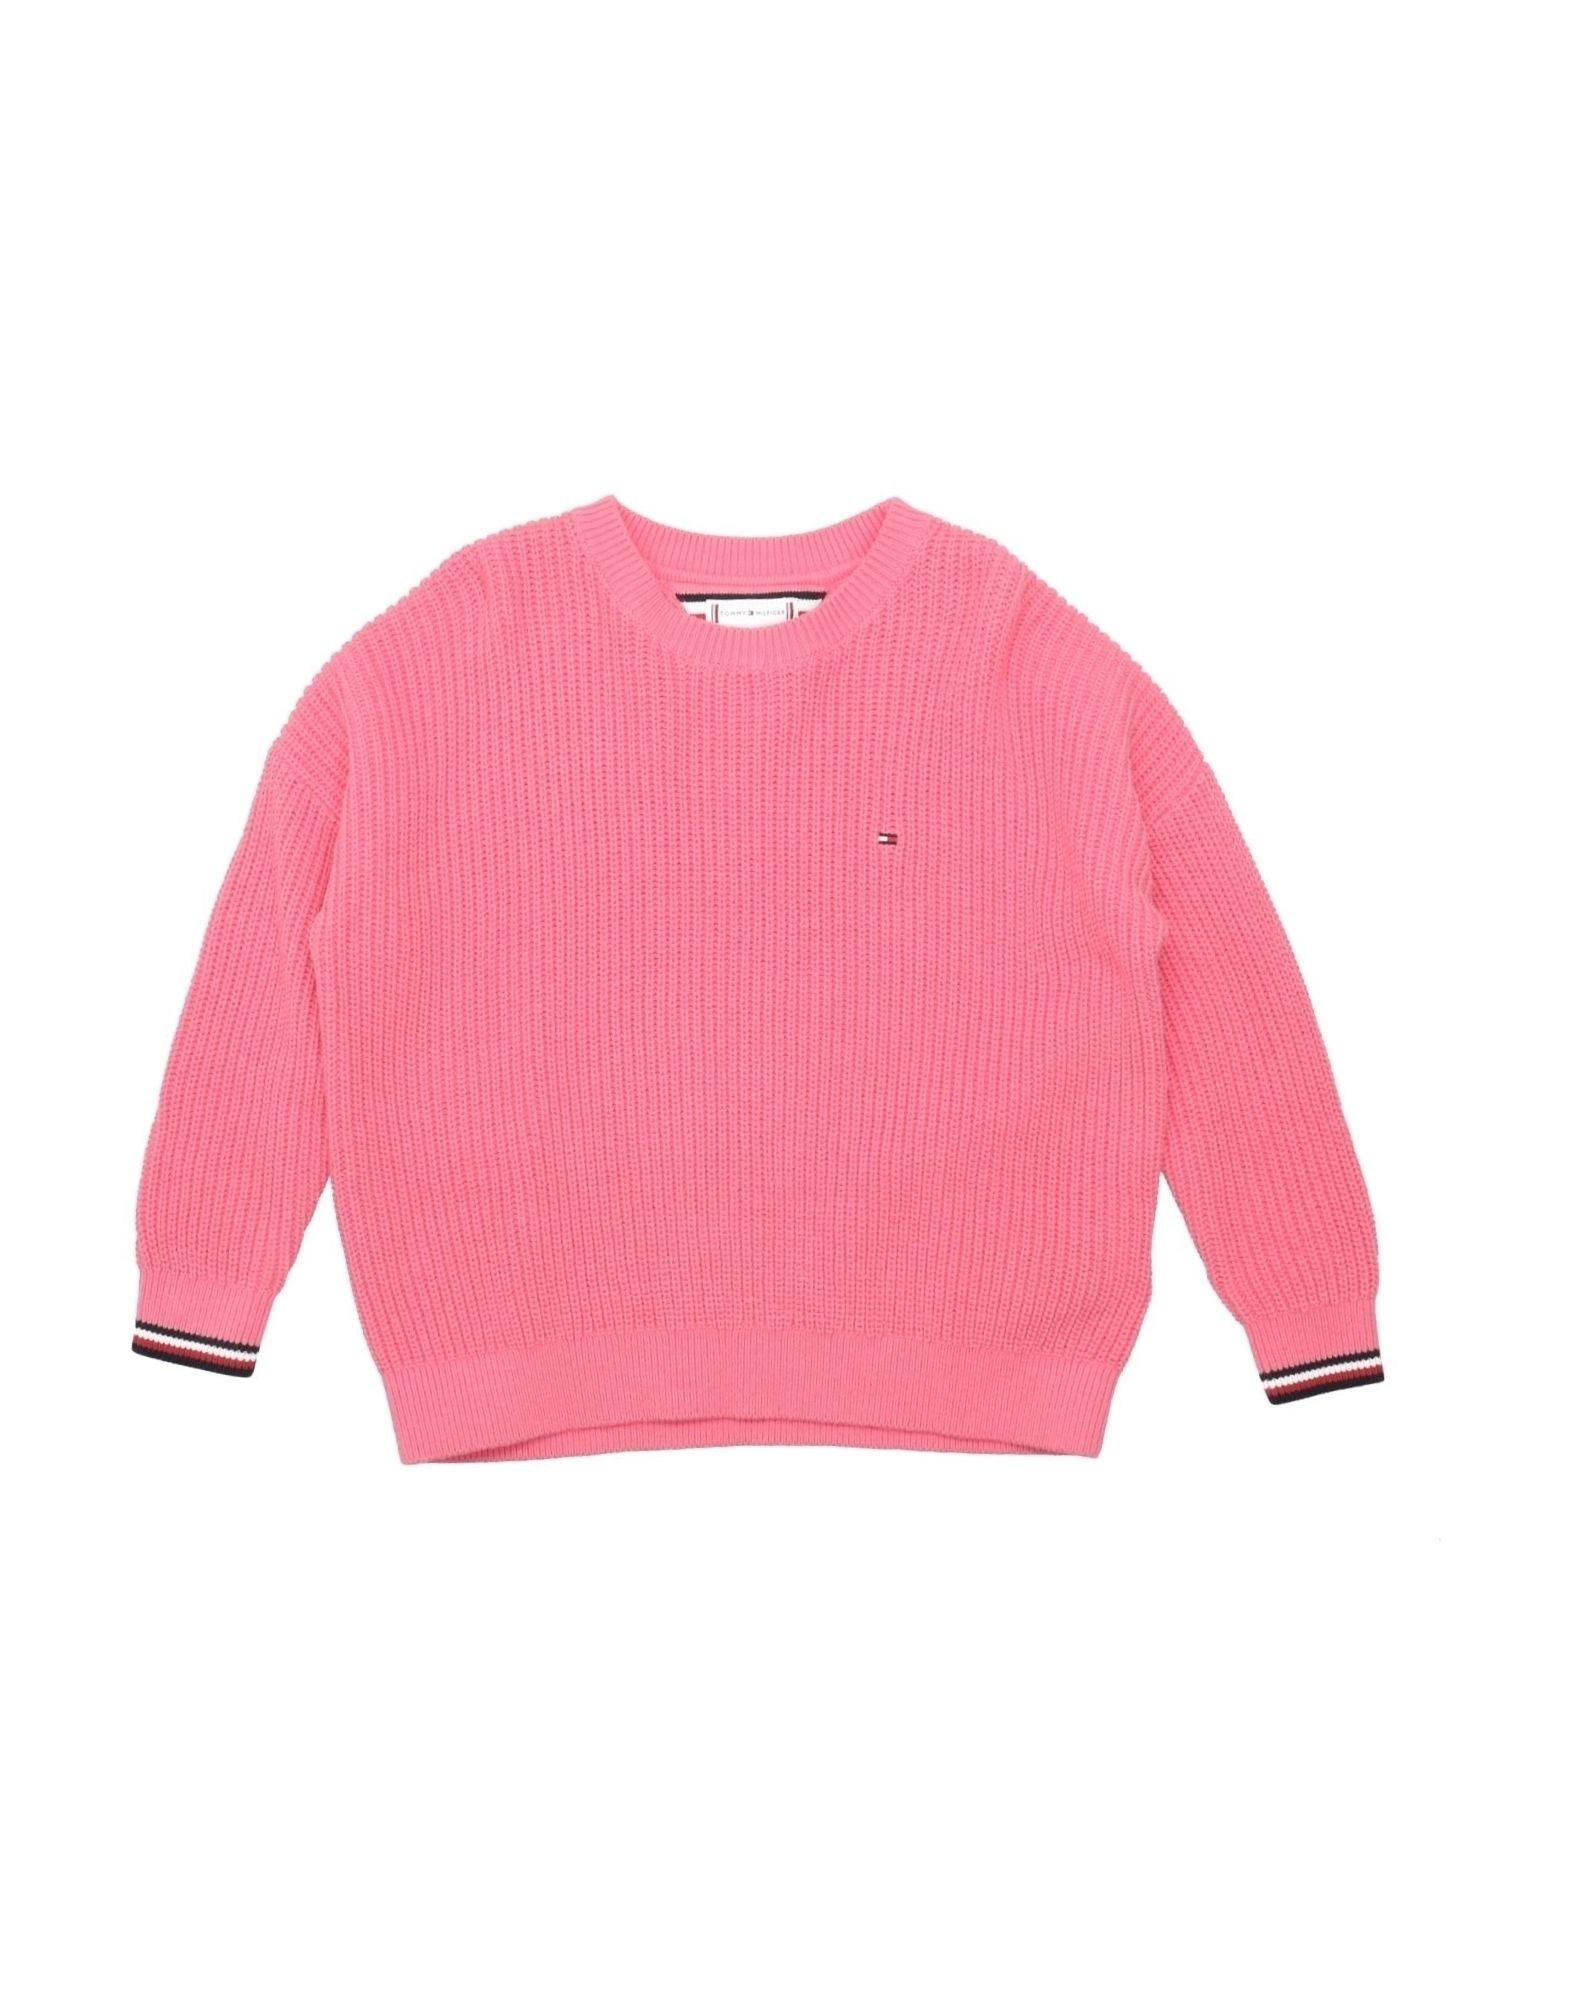 TOMMY HILFIGER Sweaters - Item 14089891